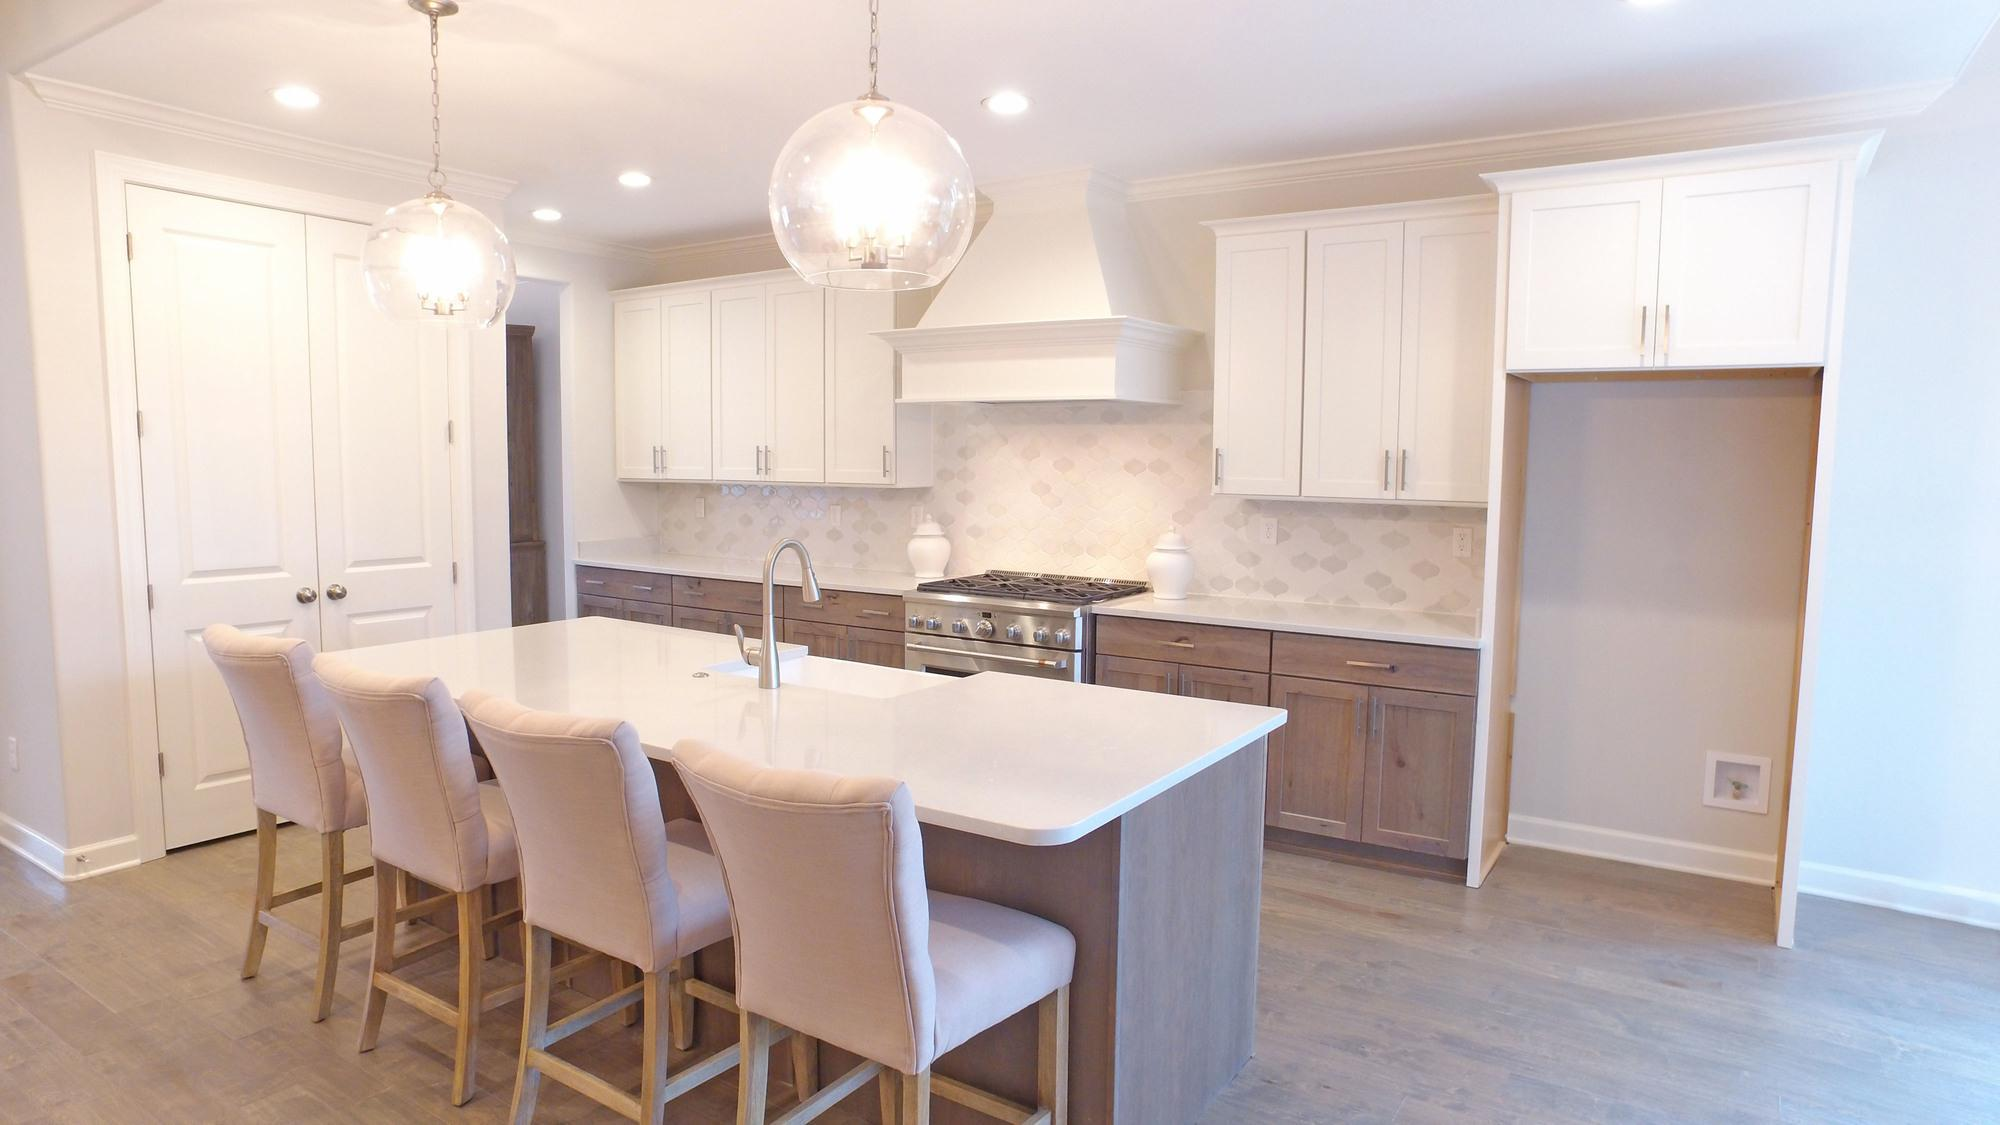 Kitchen featured in the Oakleigh By Regency Homebuilders in Memphis, TN